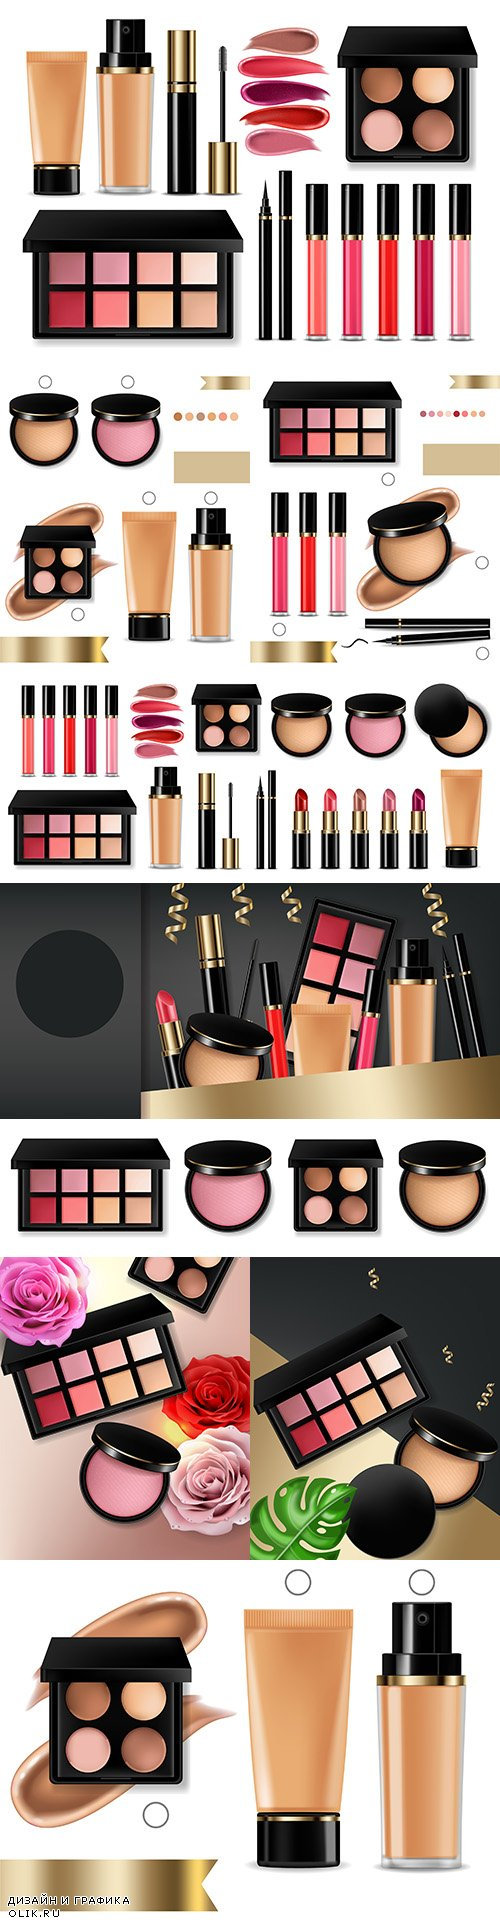 Set cosmetics for eyelids, lip gloss and blush powder